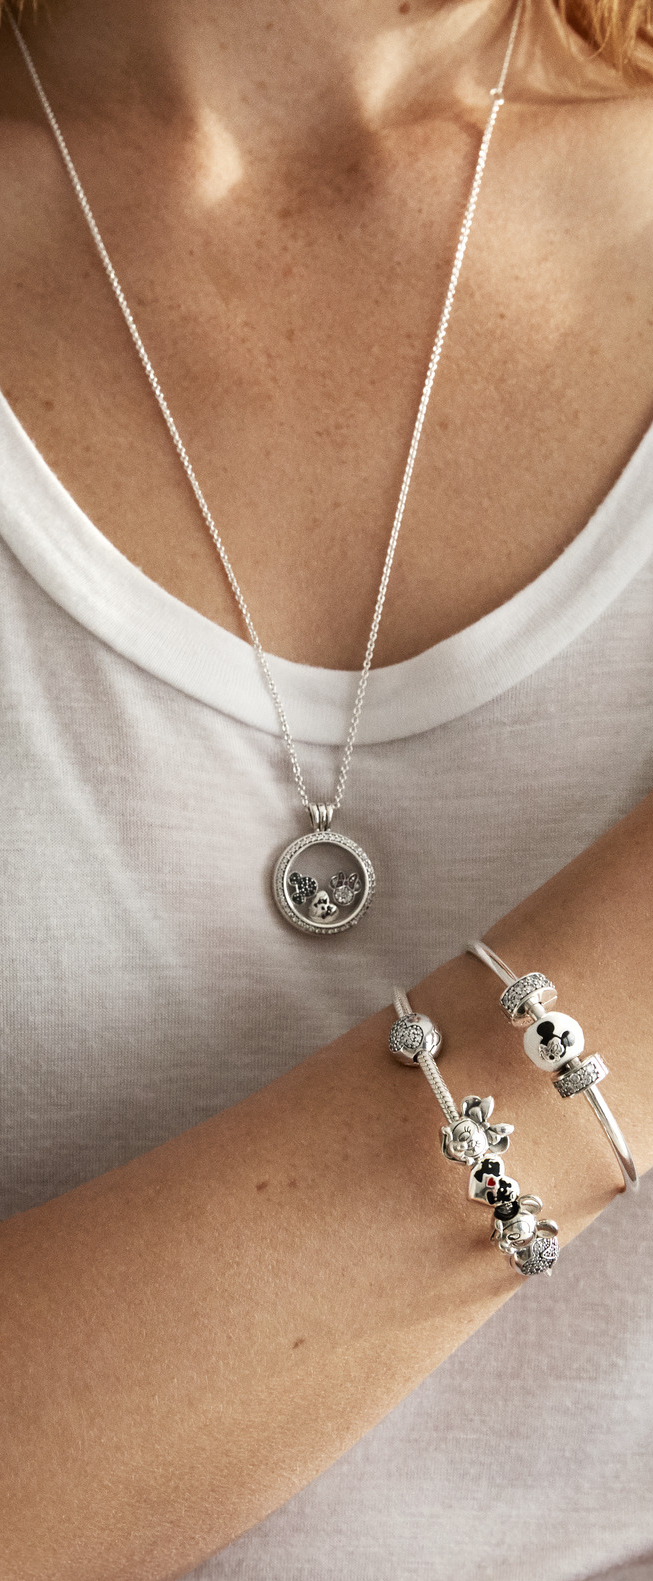 2018 Silver & Gold Jewelry Collection | Disney In 2019 | Pandora Throughout 2019 Pandora Moments Medium O Pendant Necklaces (View 3 of 25)